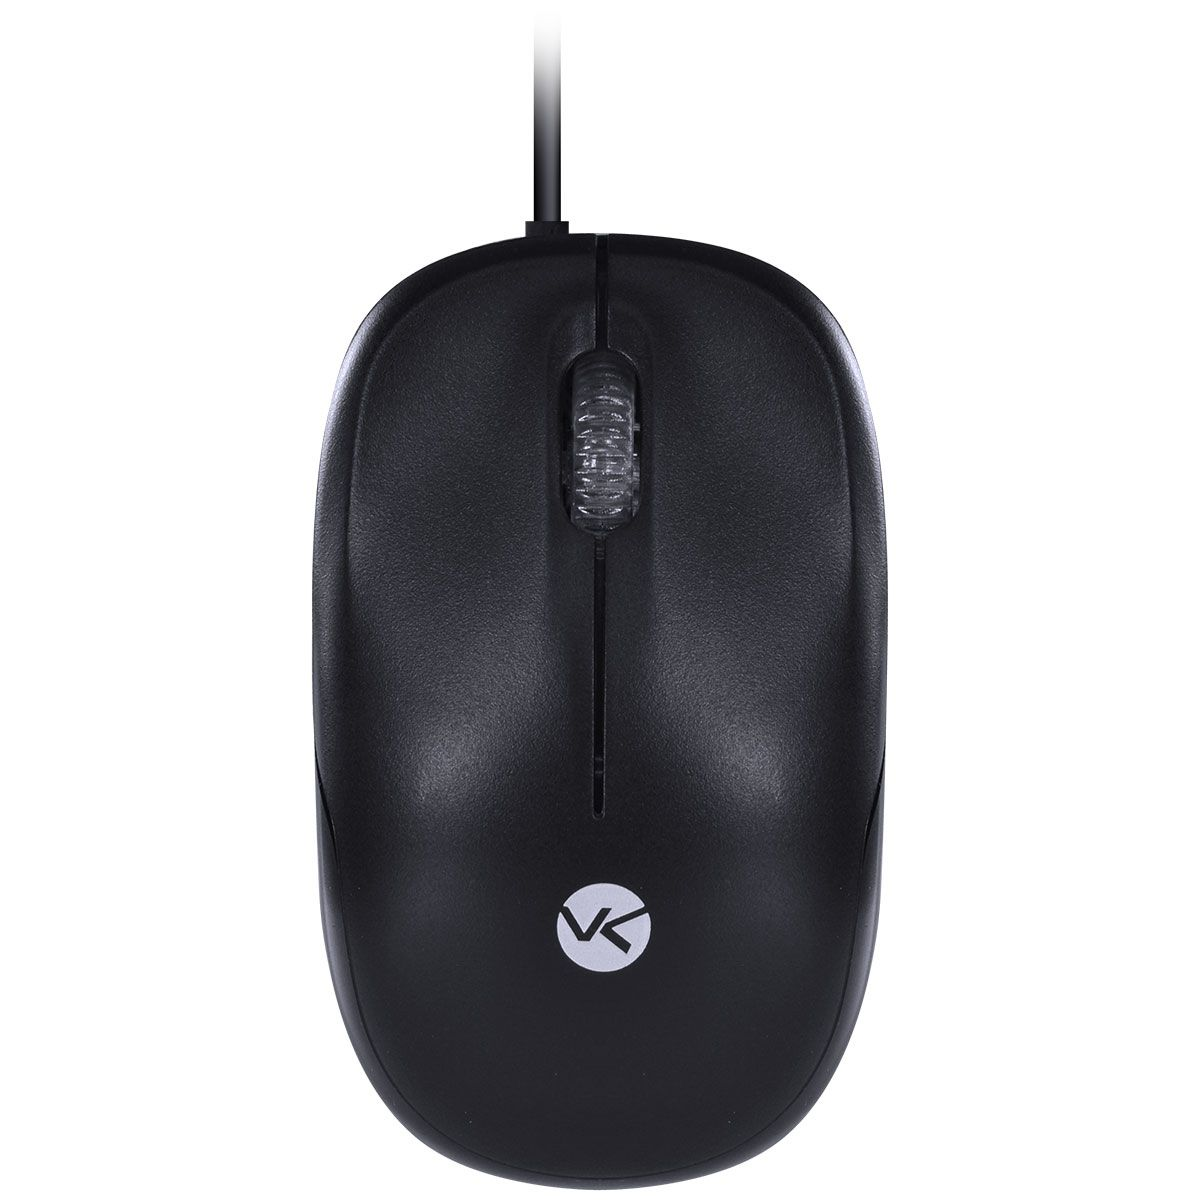 MOUSE USB DYNAMIC DM130 PRETO -  VINIK